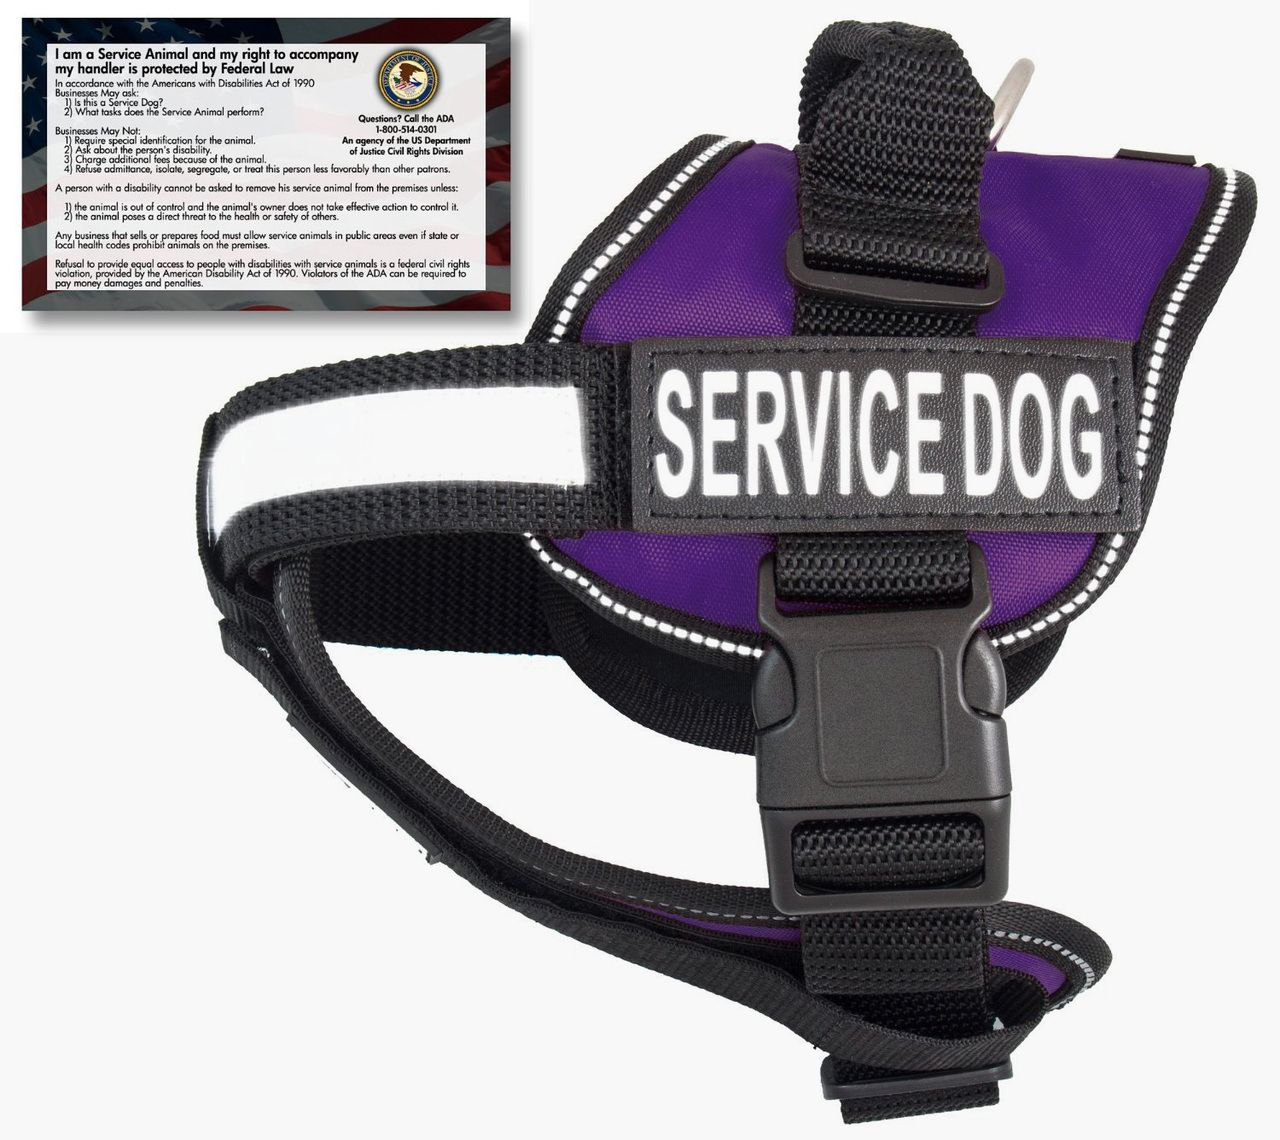 Properly identifying your Service Dog with this